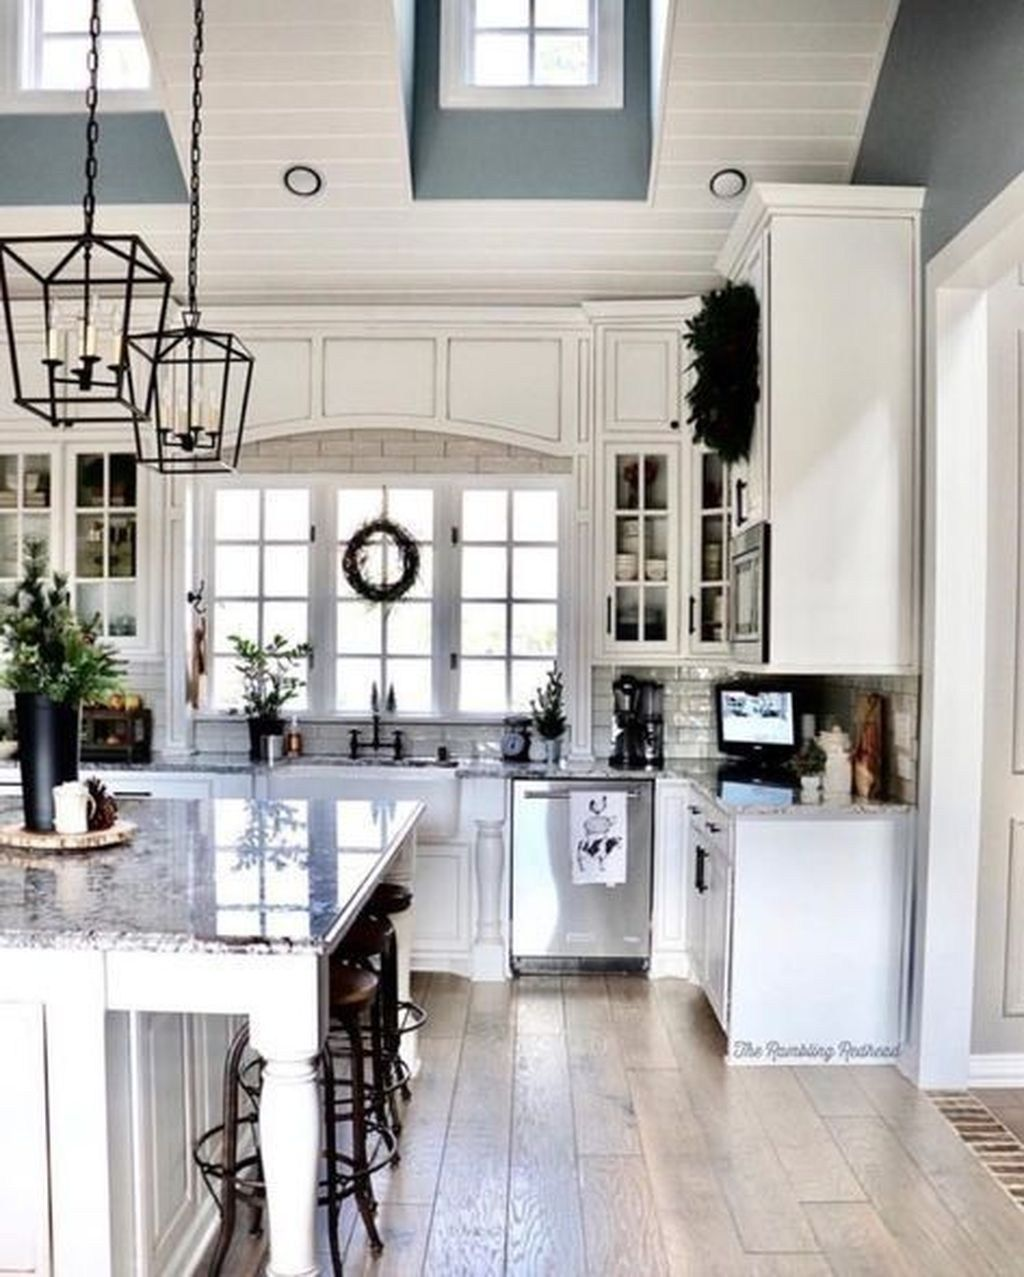 30 stunning farmhouse kitchen color ideas home decor kitchen modern farmhouse kitchens on farmhouse kitchen wall colors id=28285